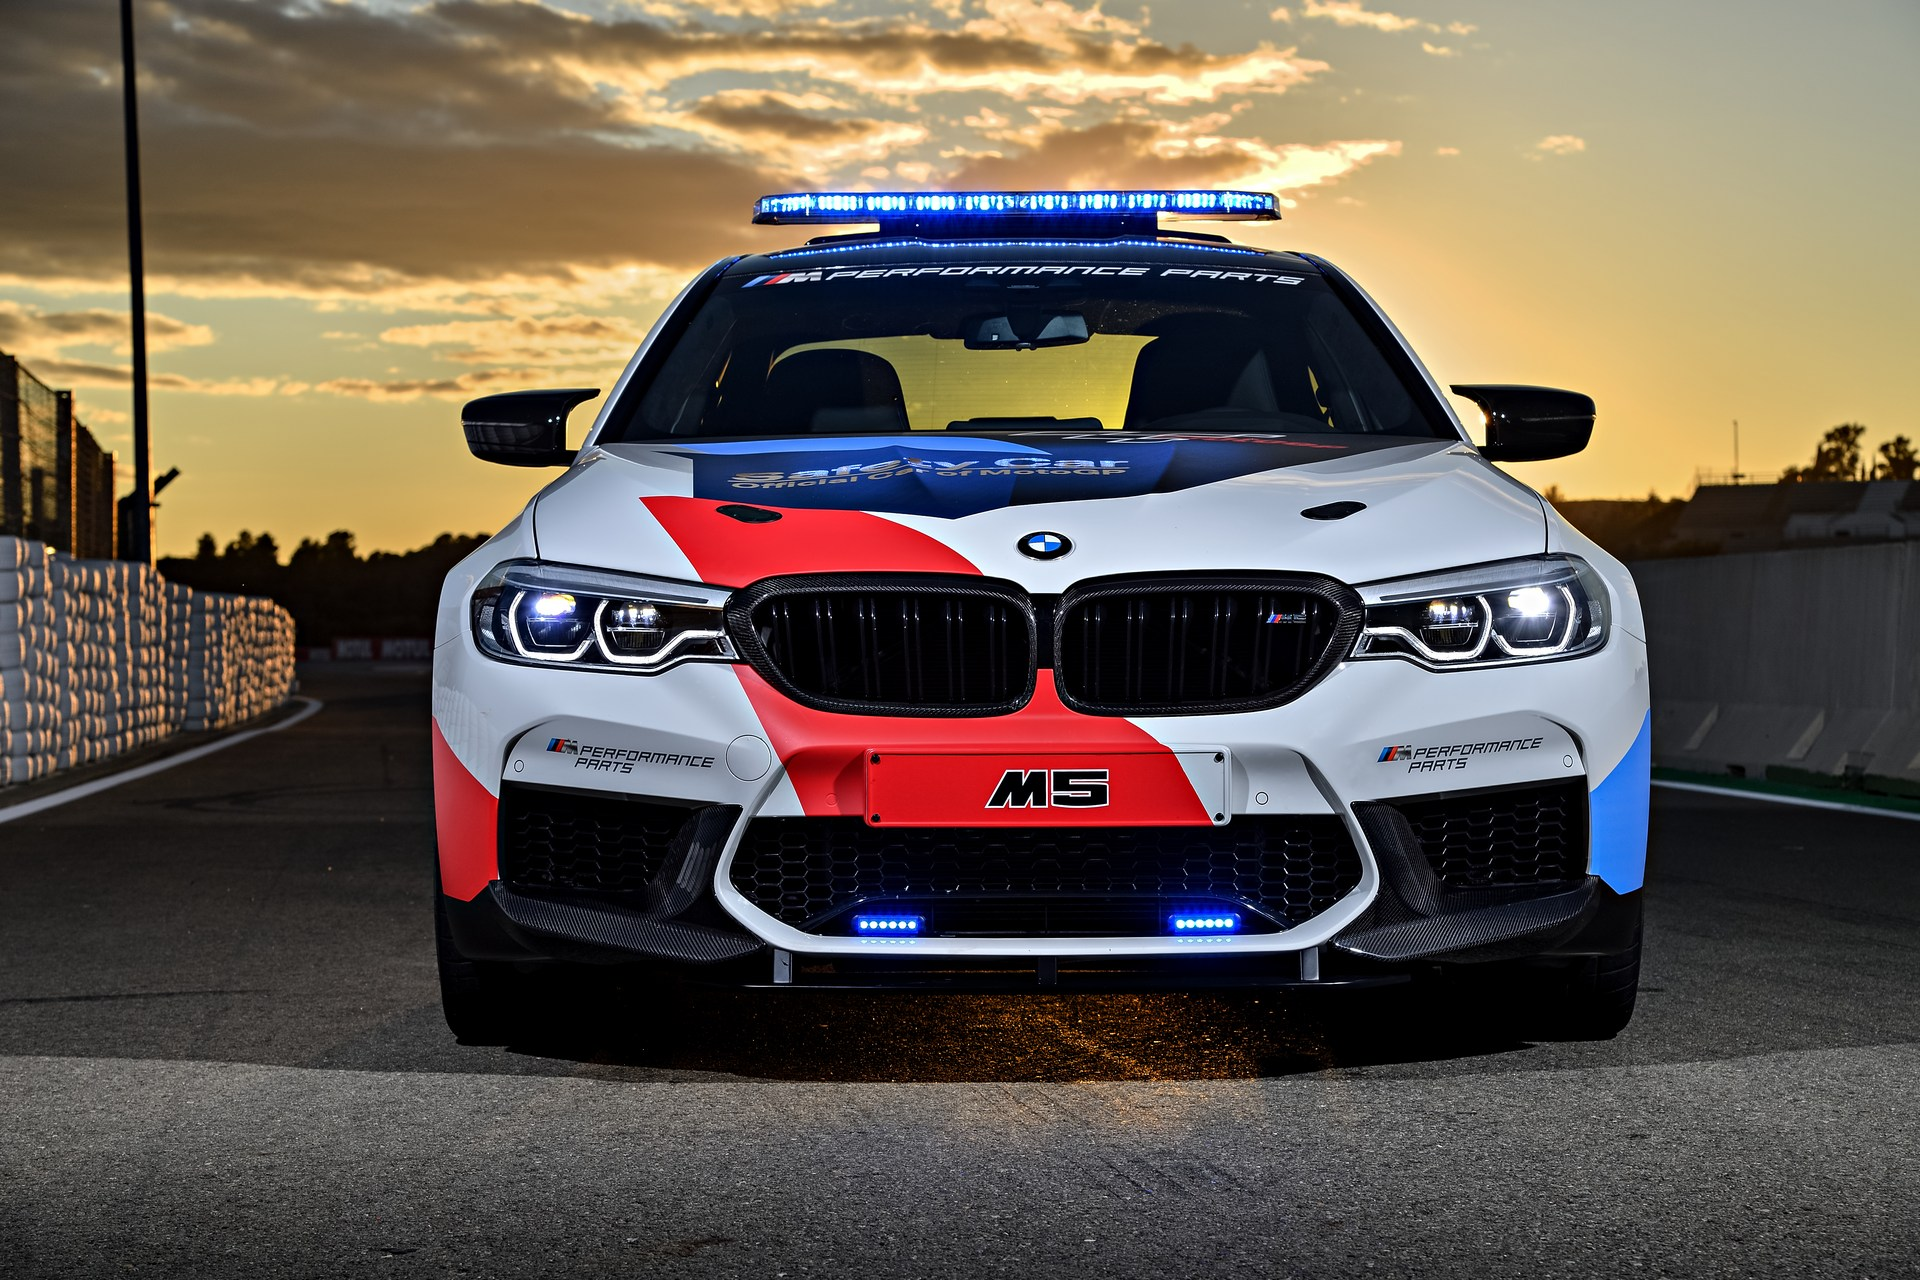 BMW_M5_Safety_Car_0011